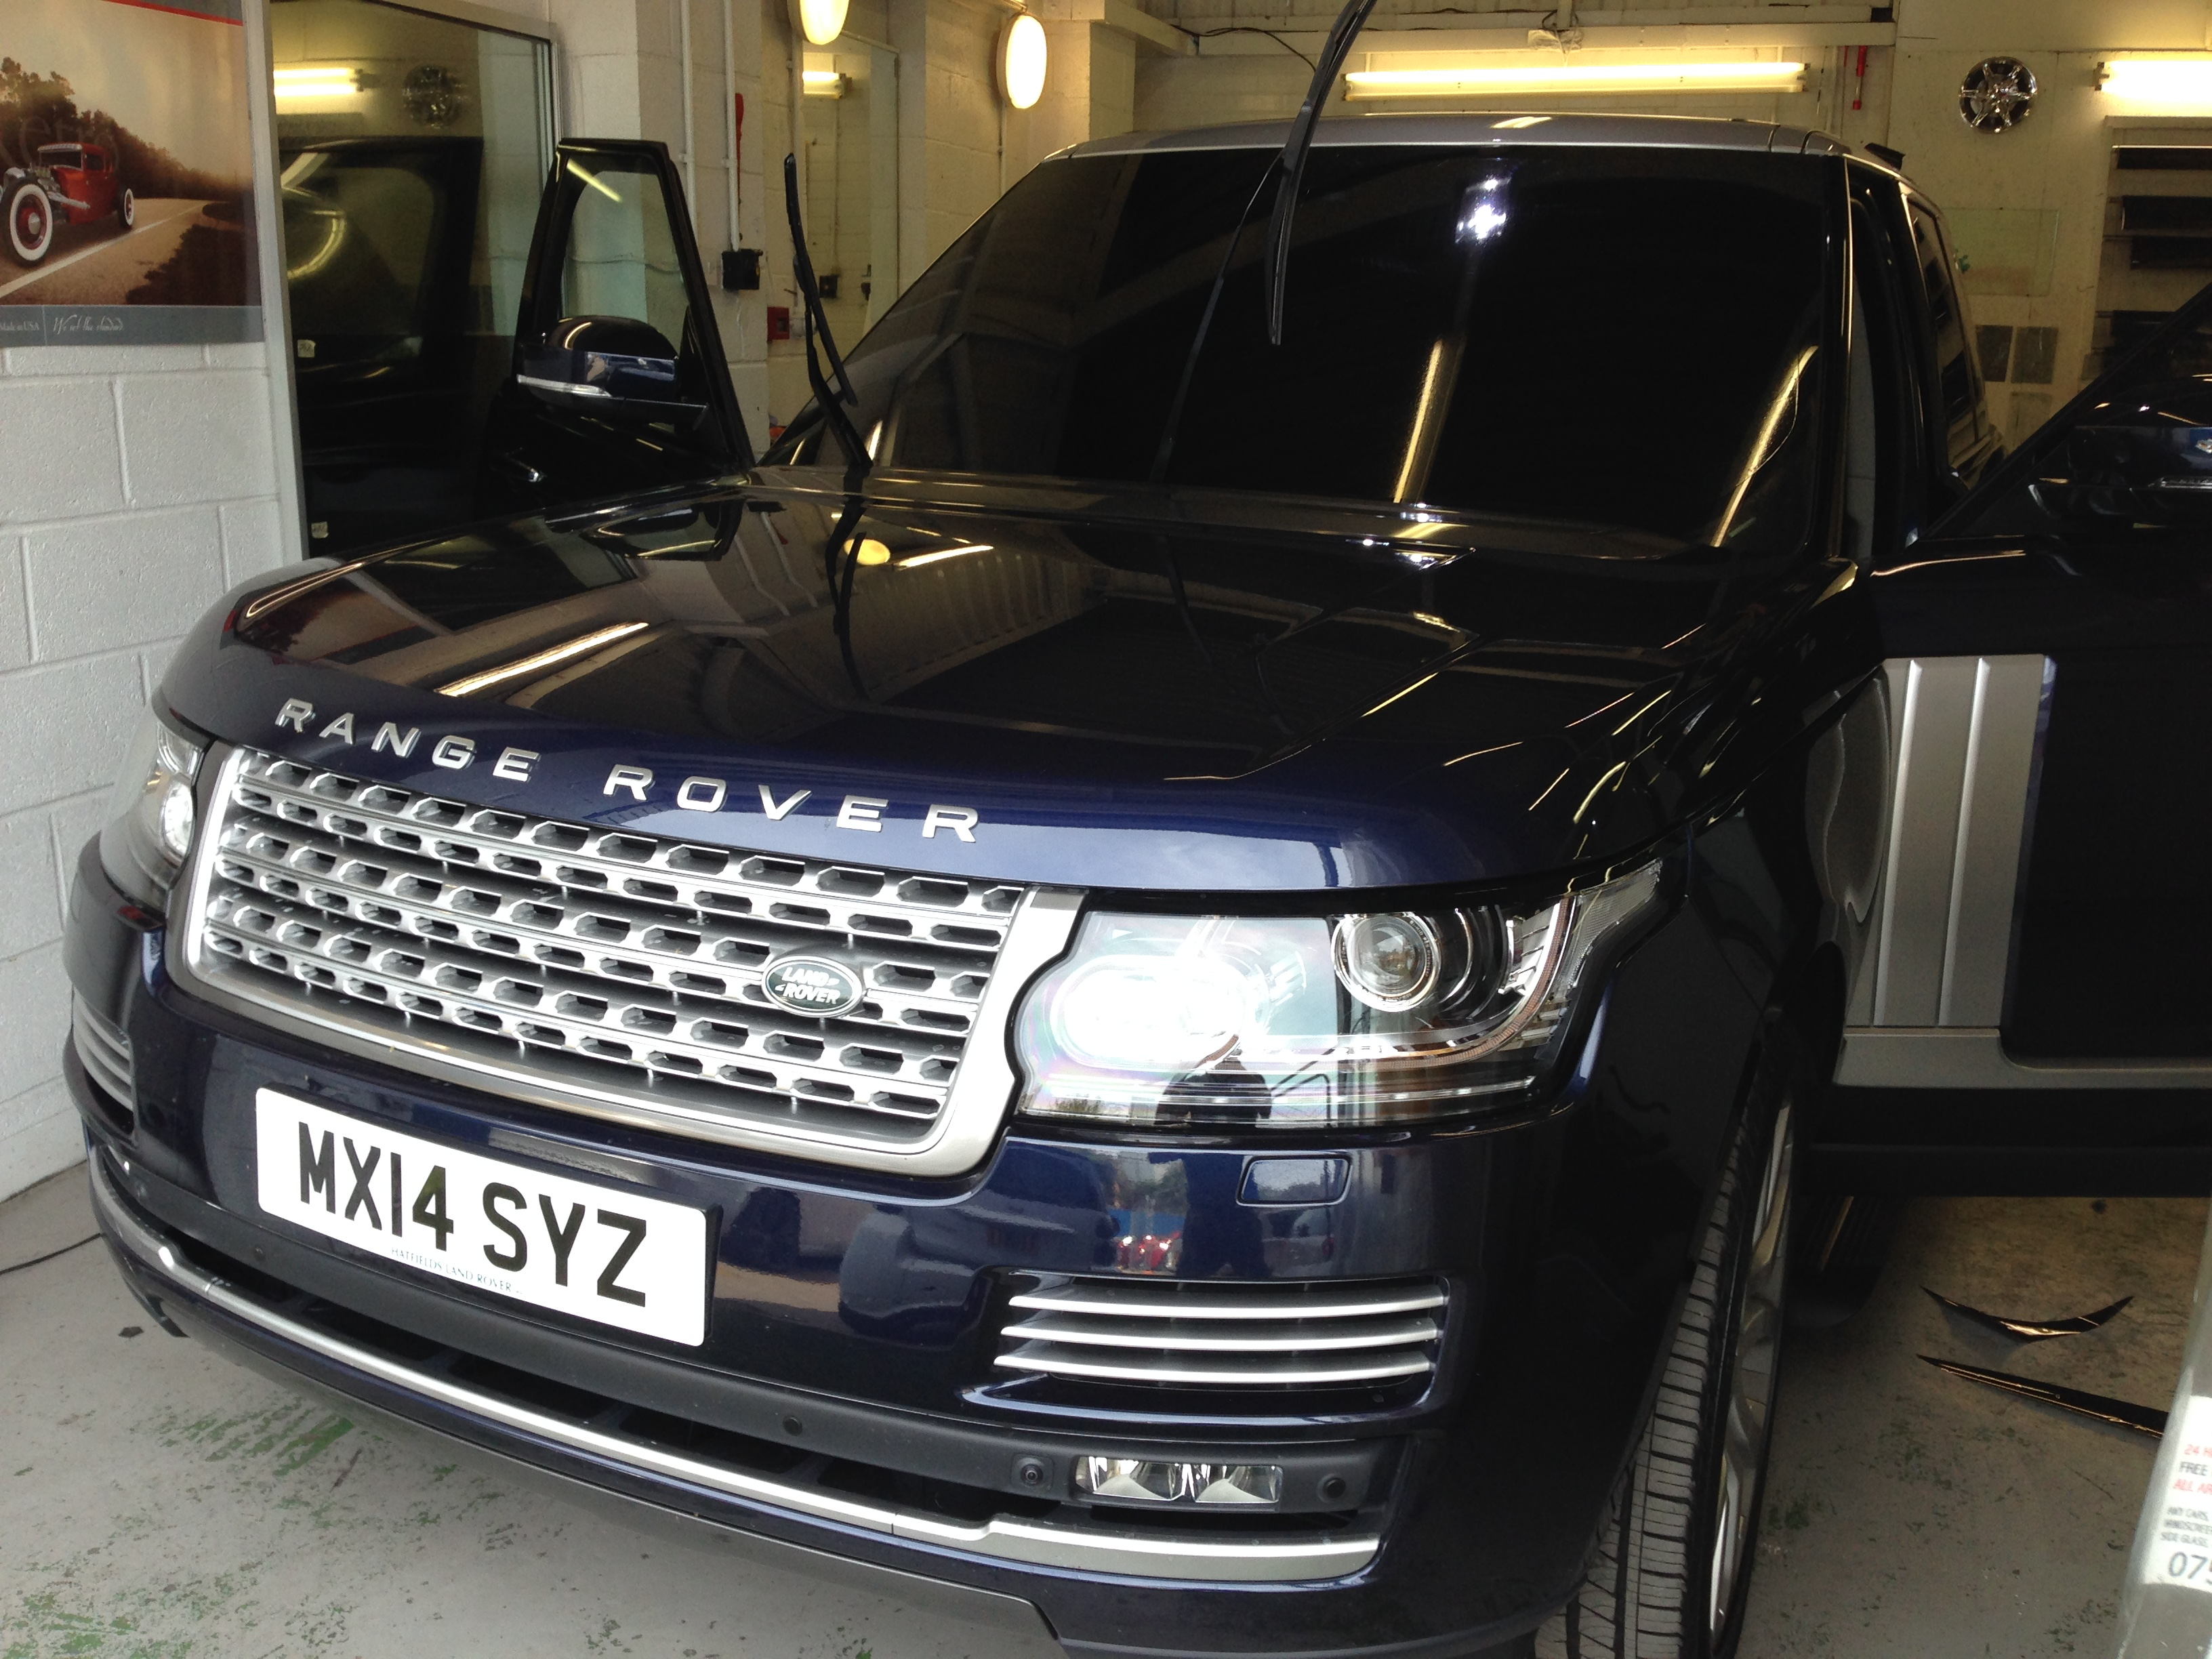 #windscreentinting #carwindowting #london #dilpomat #vip #rangerover